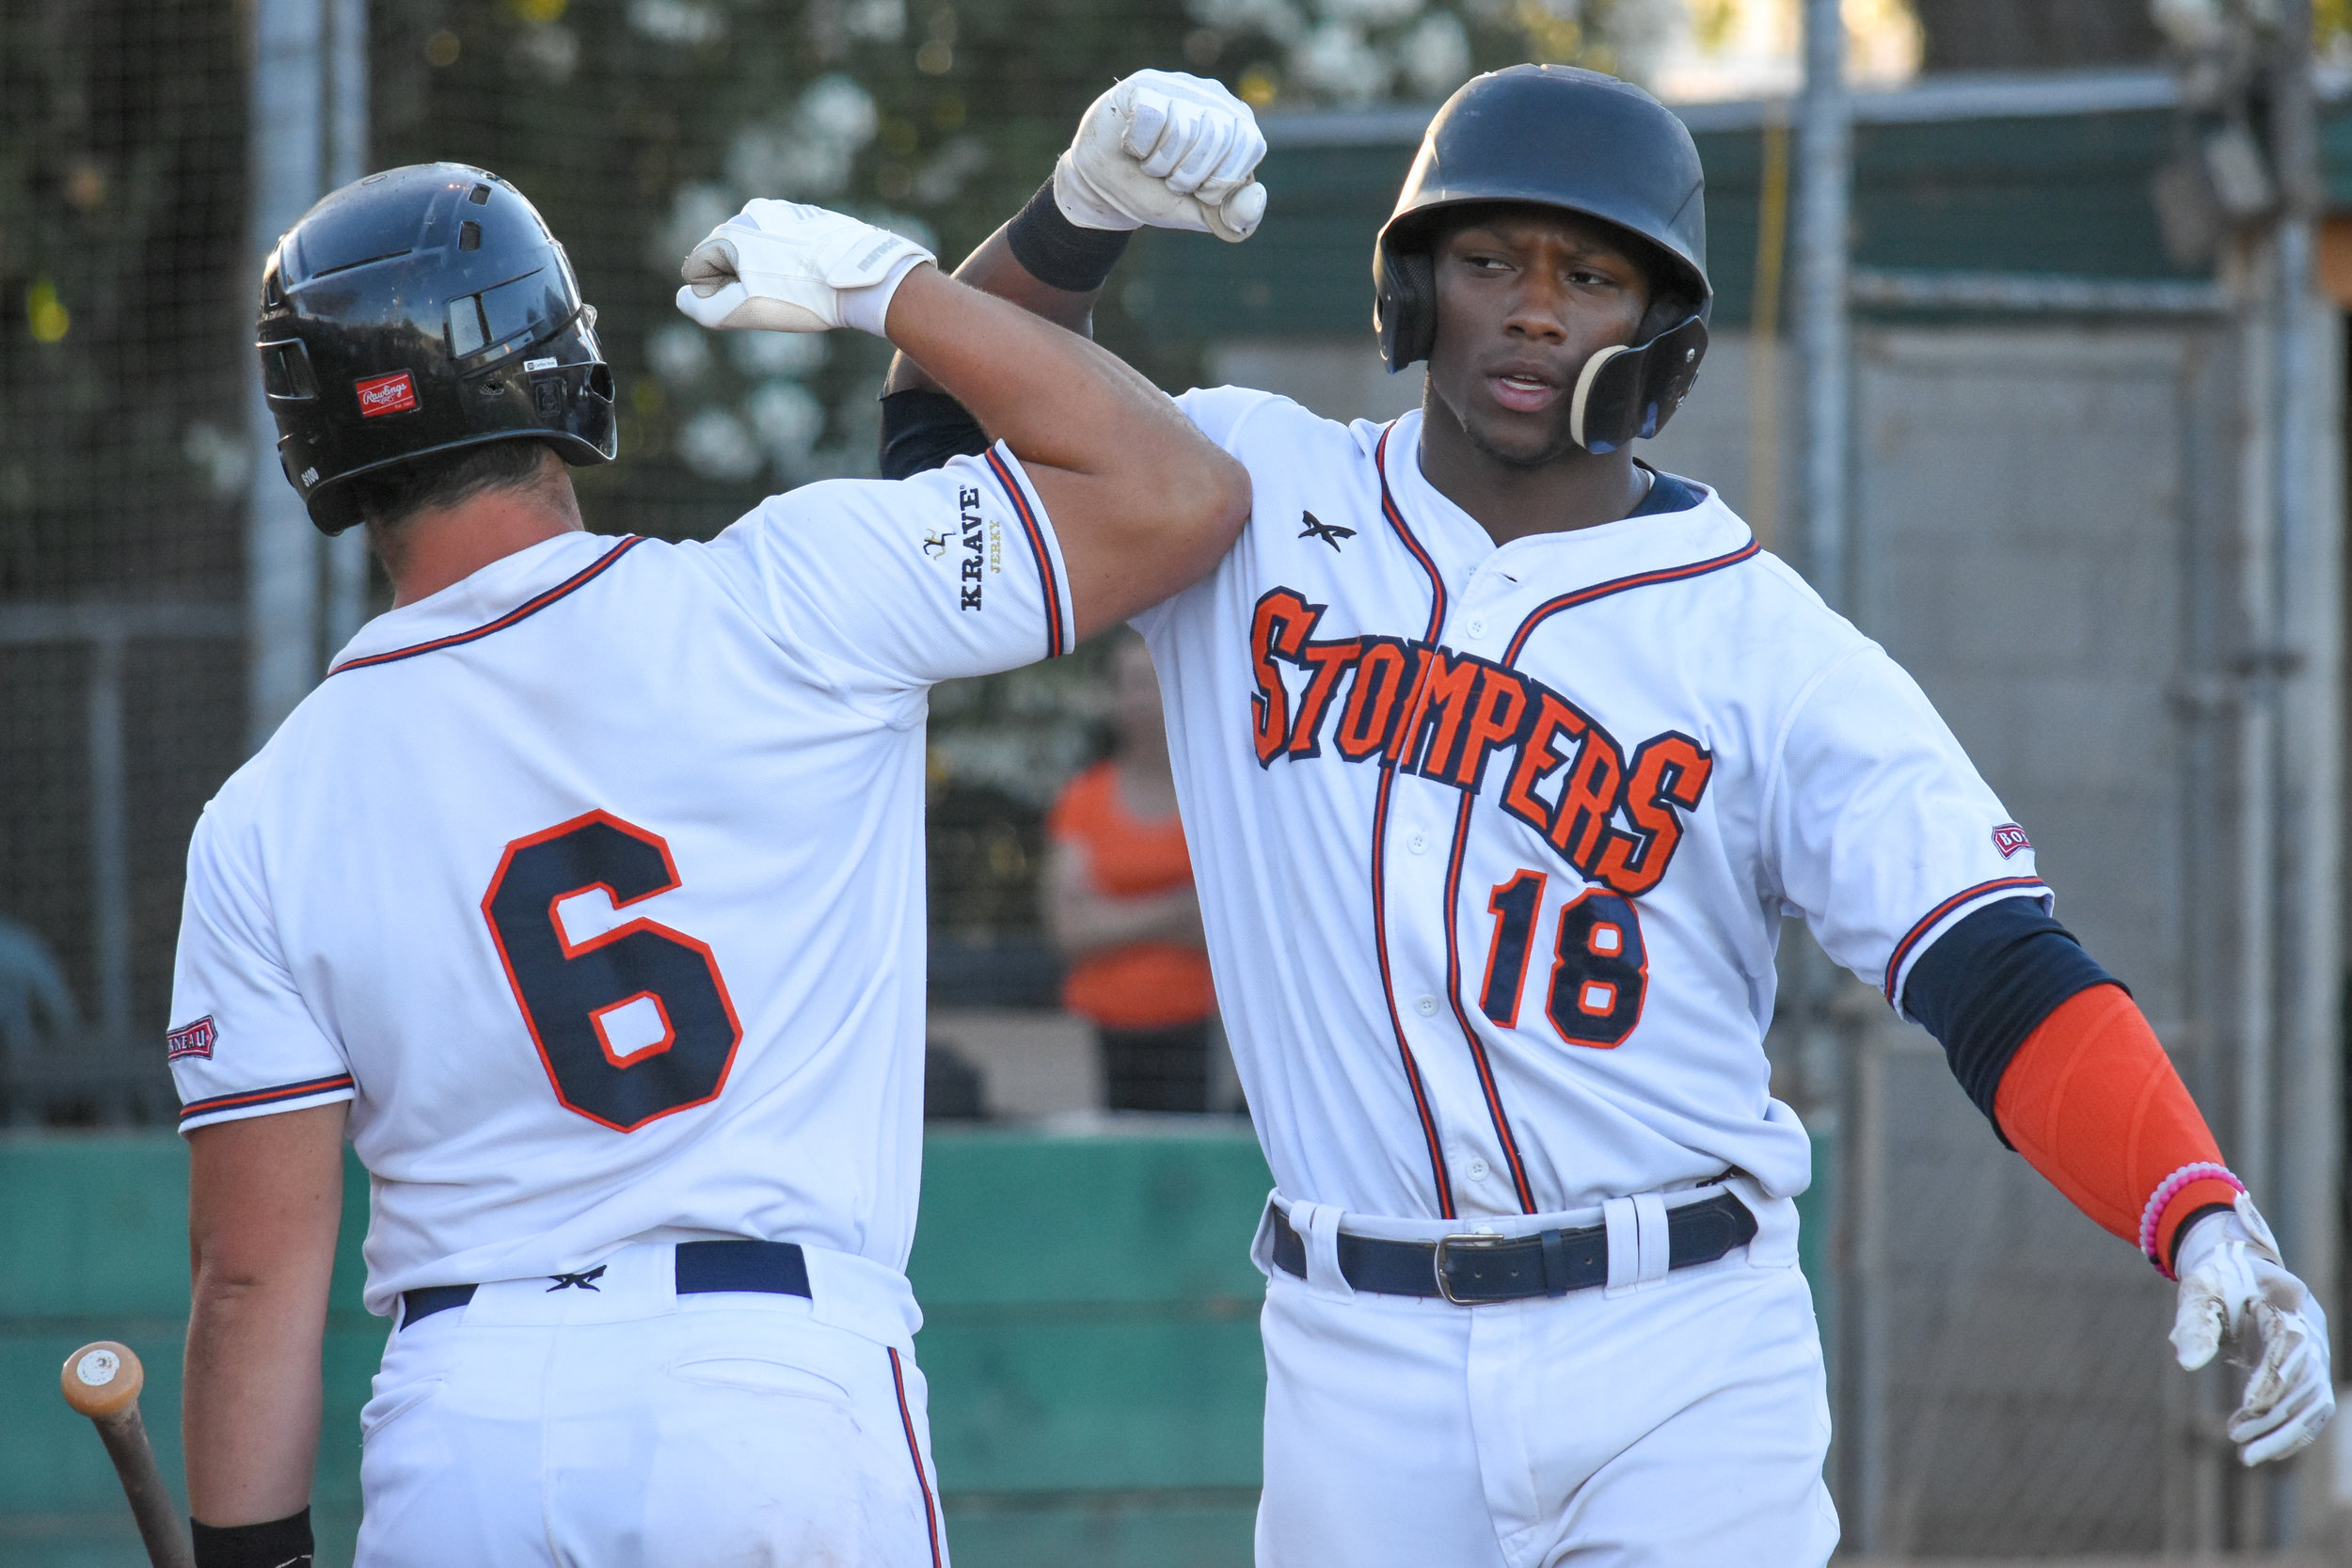 Miles Williams (18) celebrates with Daniel Comstock (6) after hitting his second home run of the game in the fifth inning on Saturday, July 7th, 2018. (James W. Toy III / Sonoma Stompers)